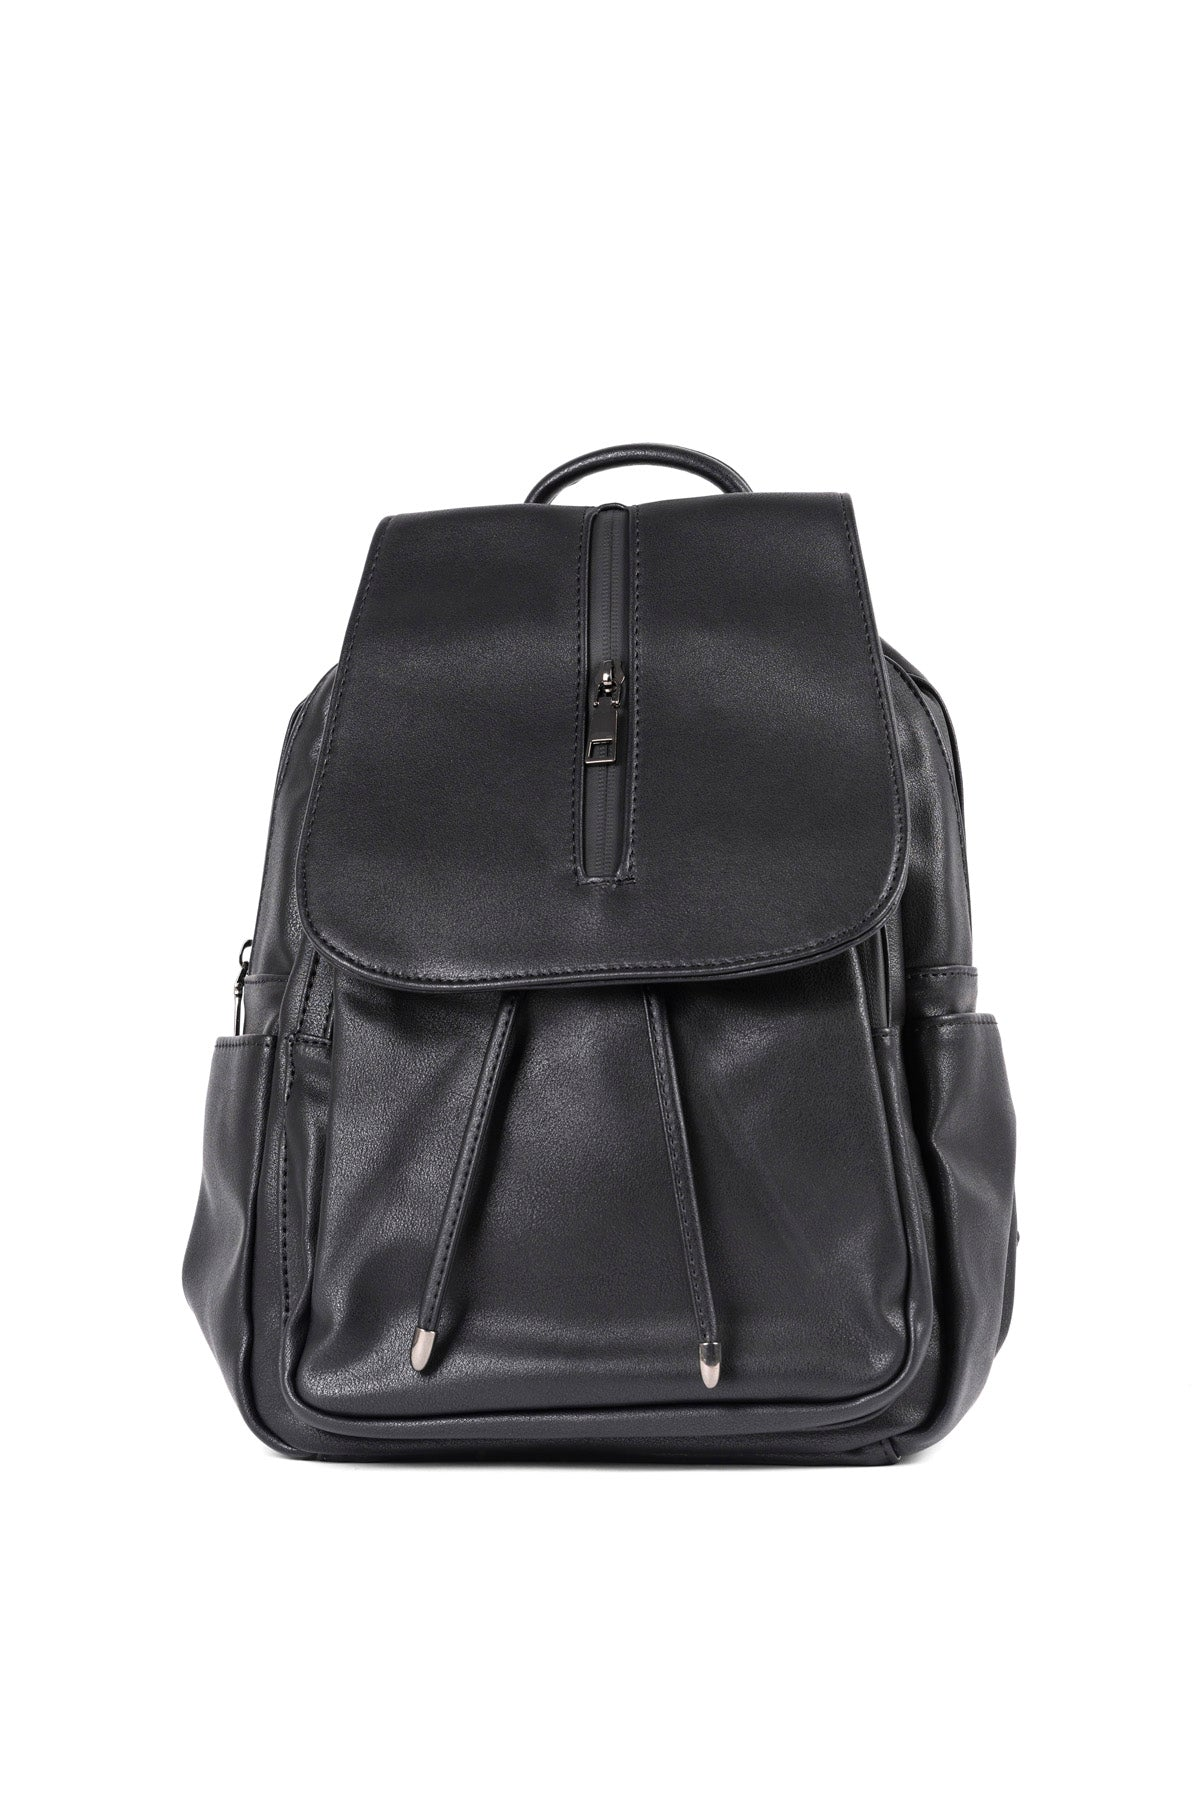 Backpack-90886